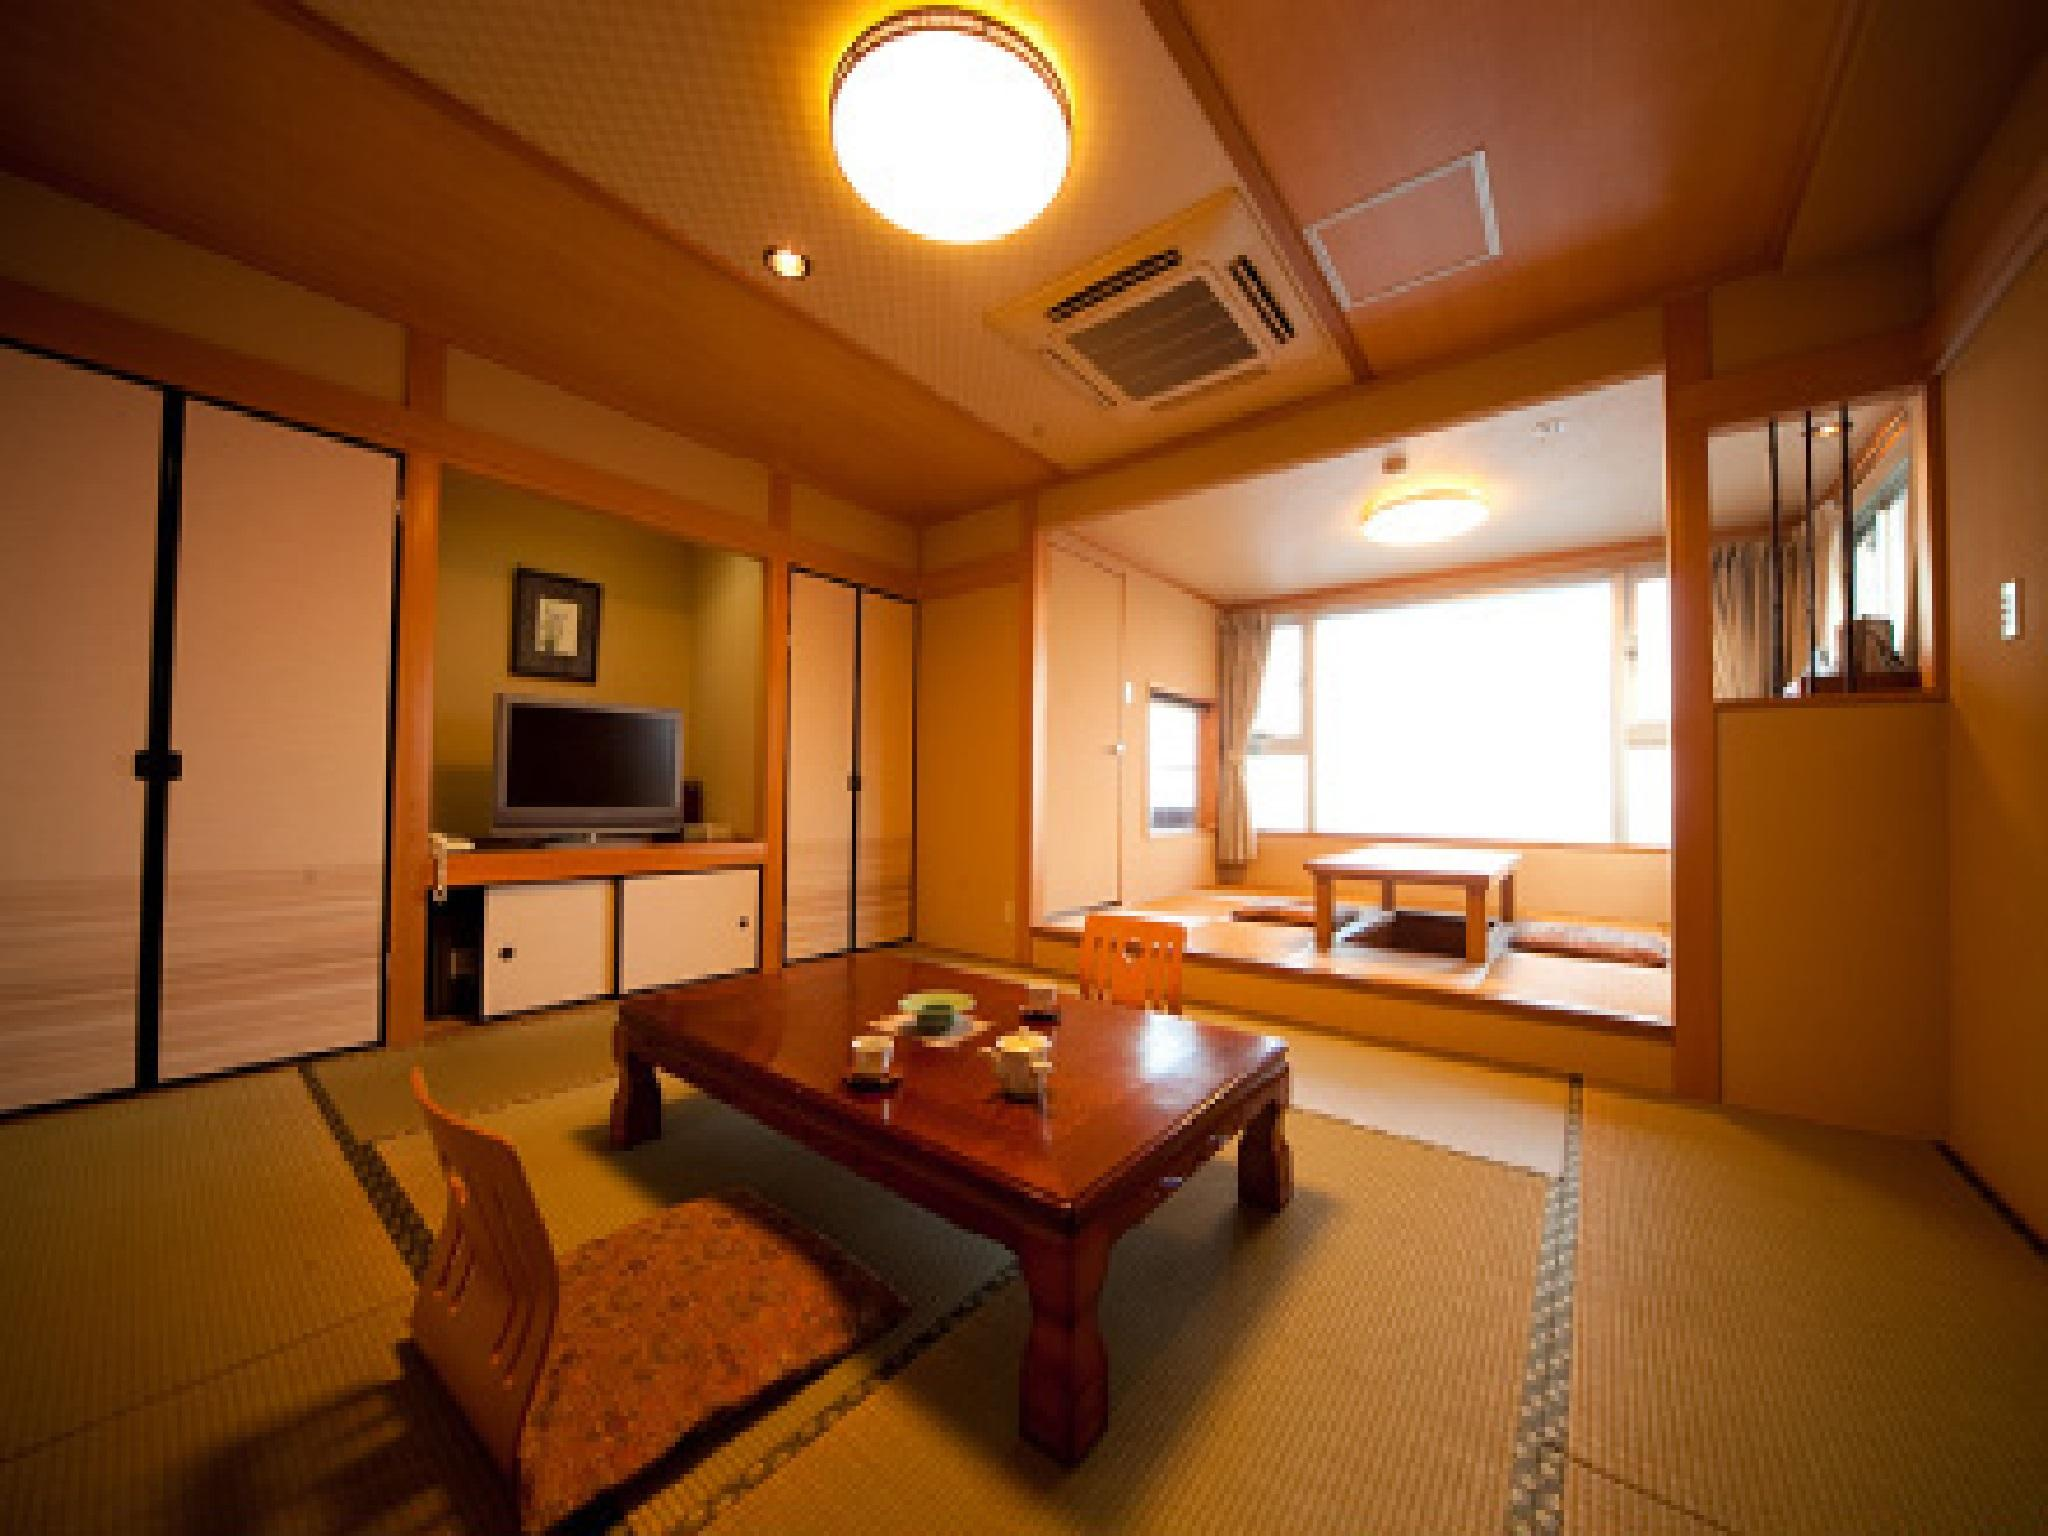 日式客房 - 有陶瓷浴缸/禁菸 (Japanese Style Room with Ceramic Bathtub - Non-Smoking)